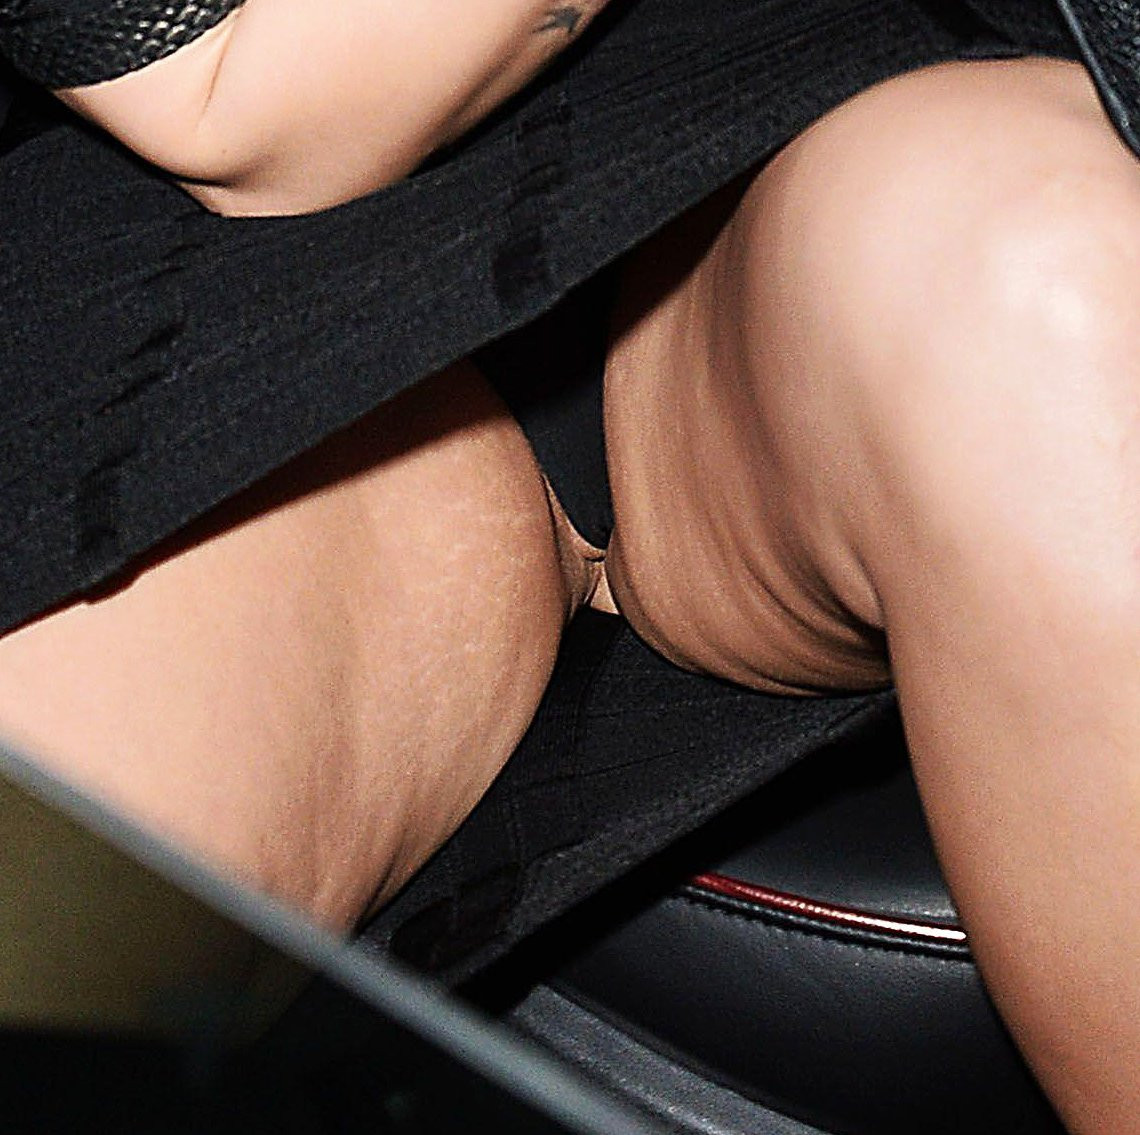 Demi-Lovato-Pussy-001---TheFappening.nu1c61b9af4860ebbe.jpg